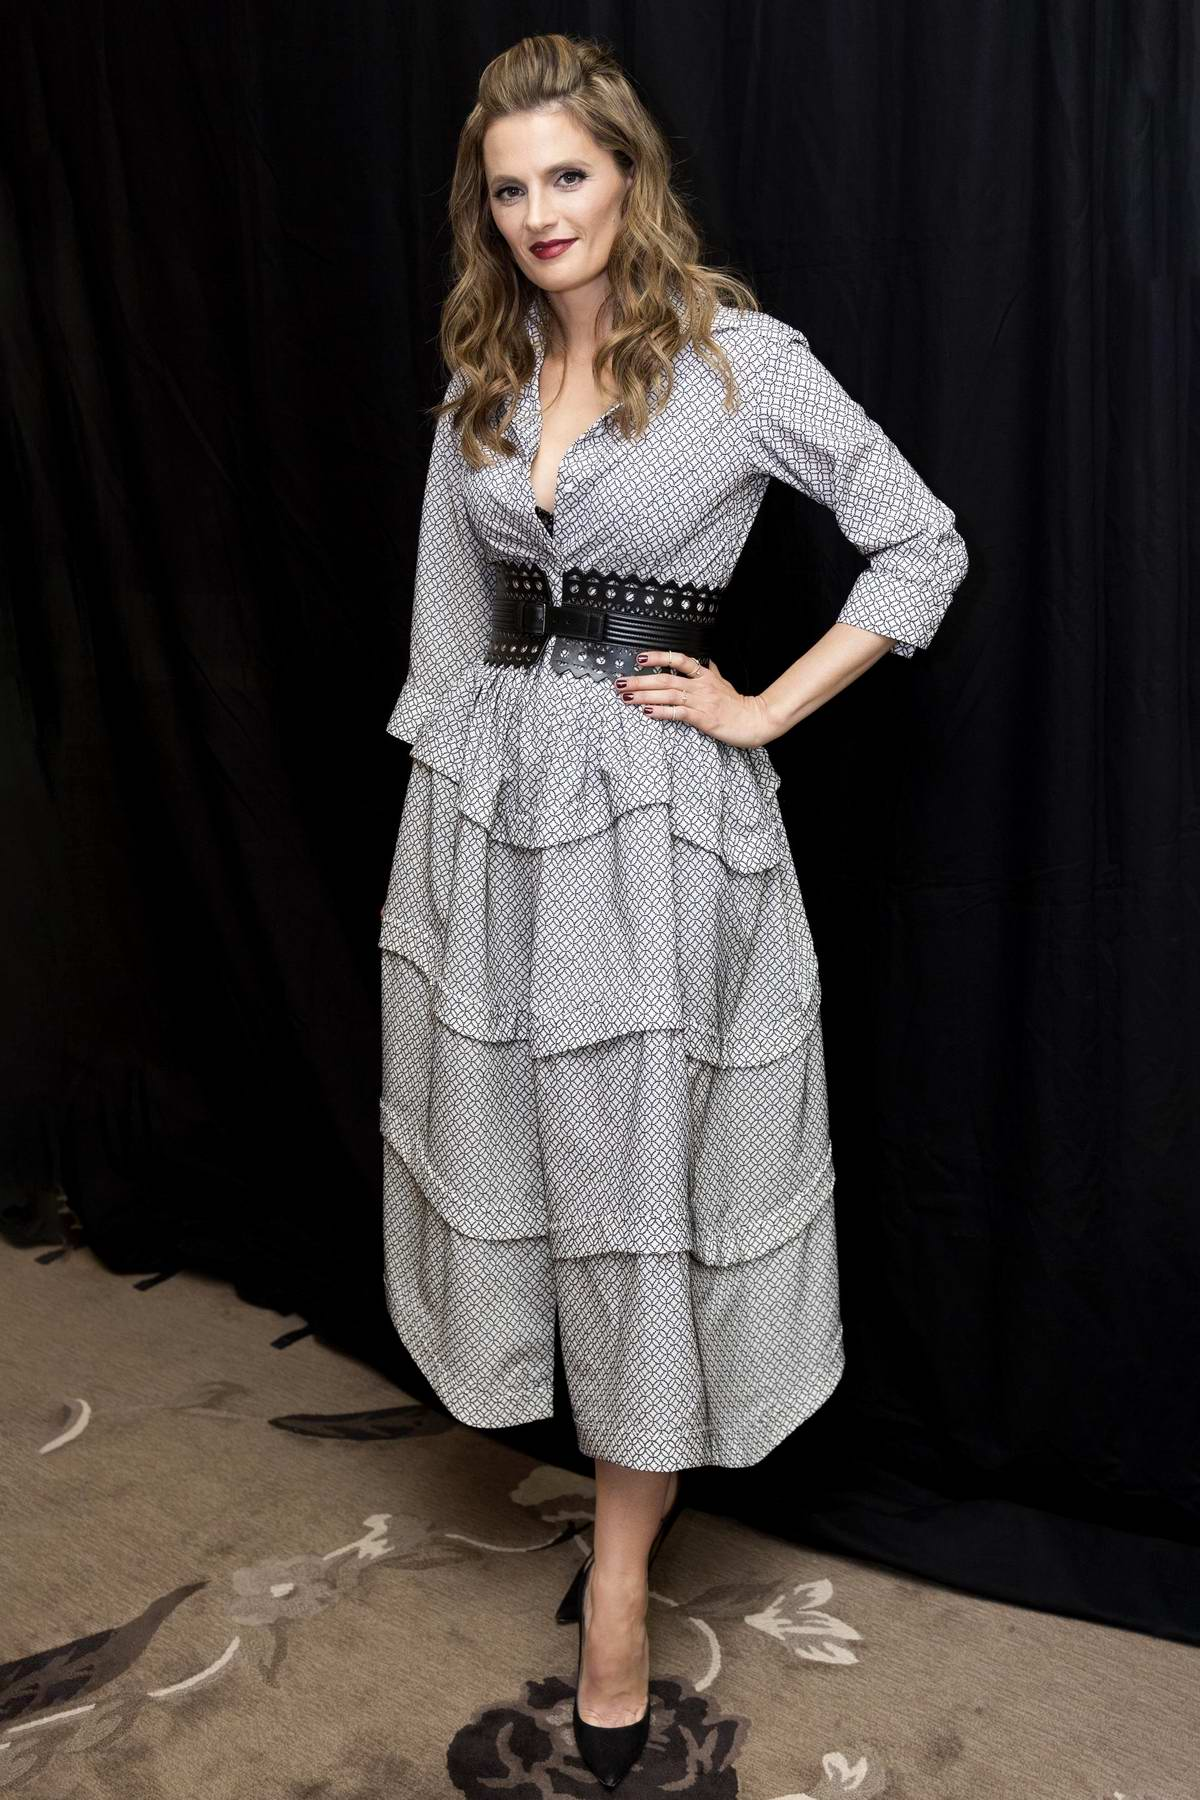 Stana Katic attends 'Absentia' Press Conference and Photocall in Los Angeles